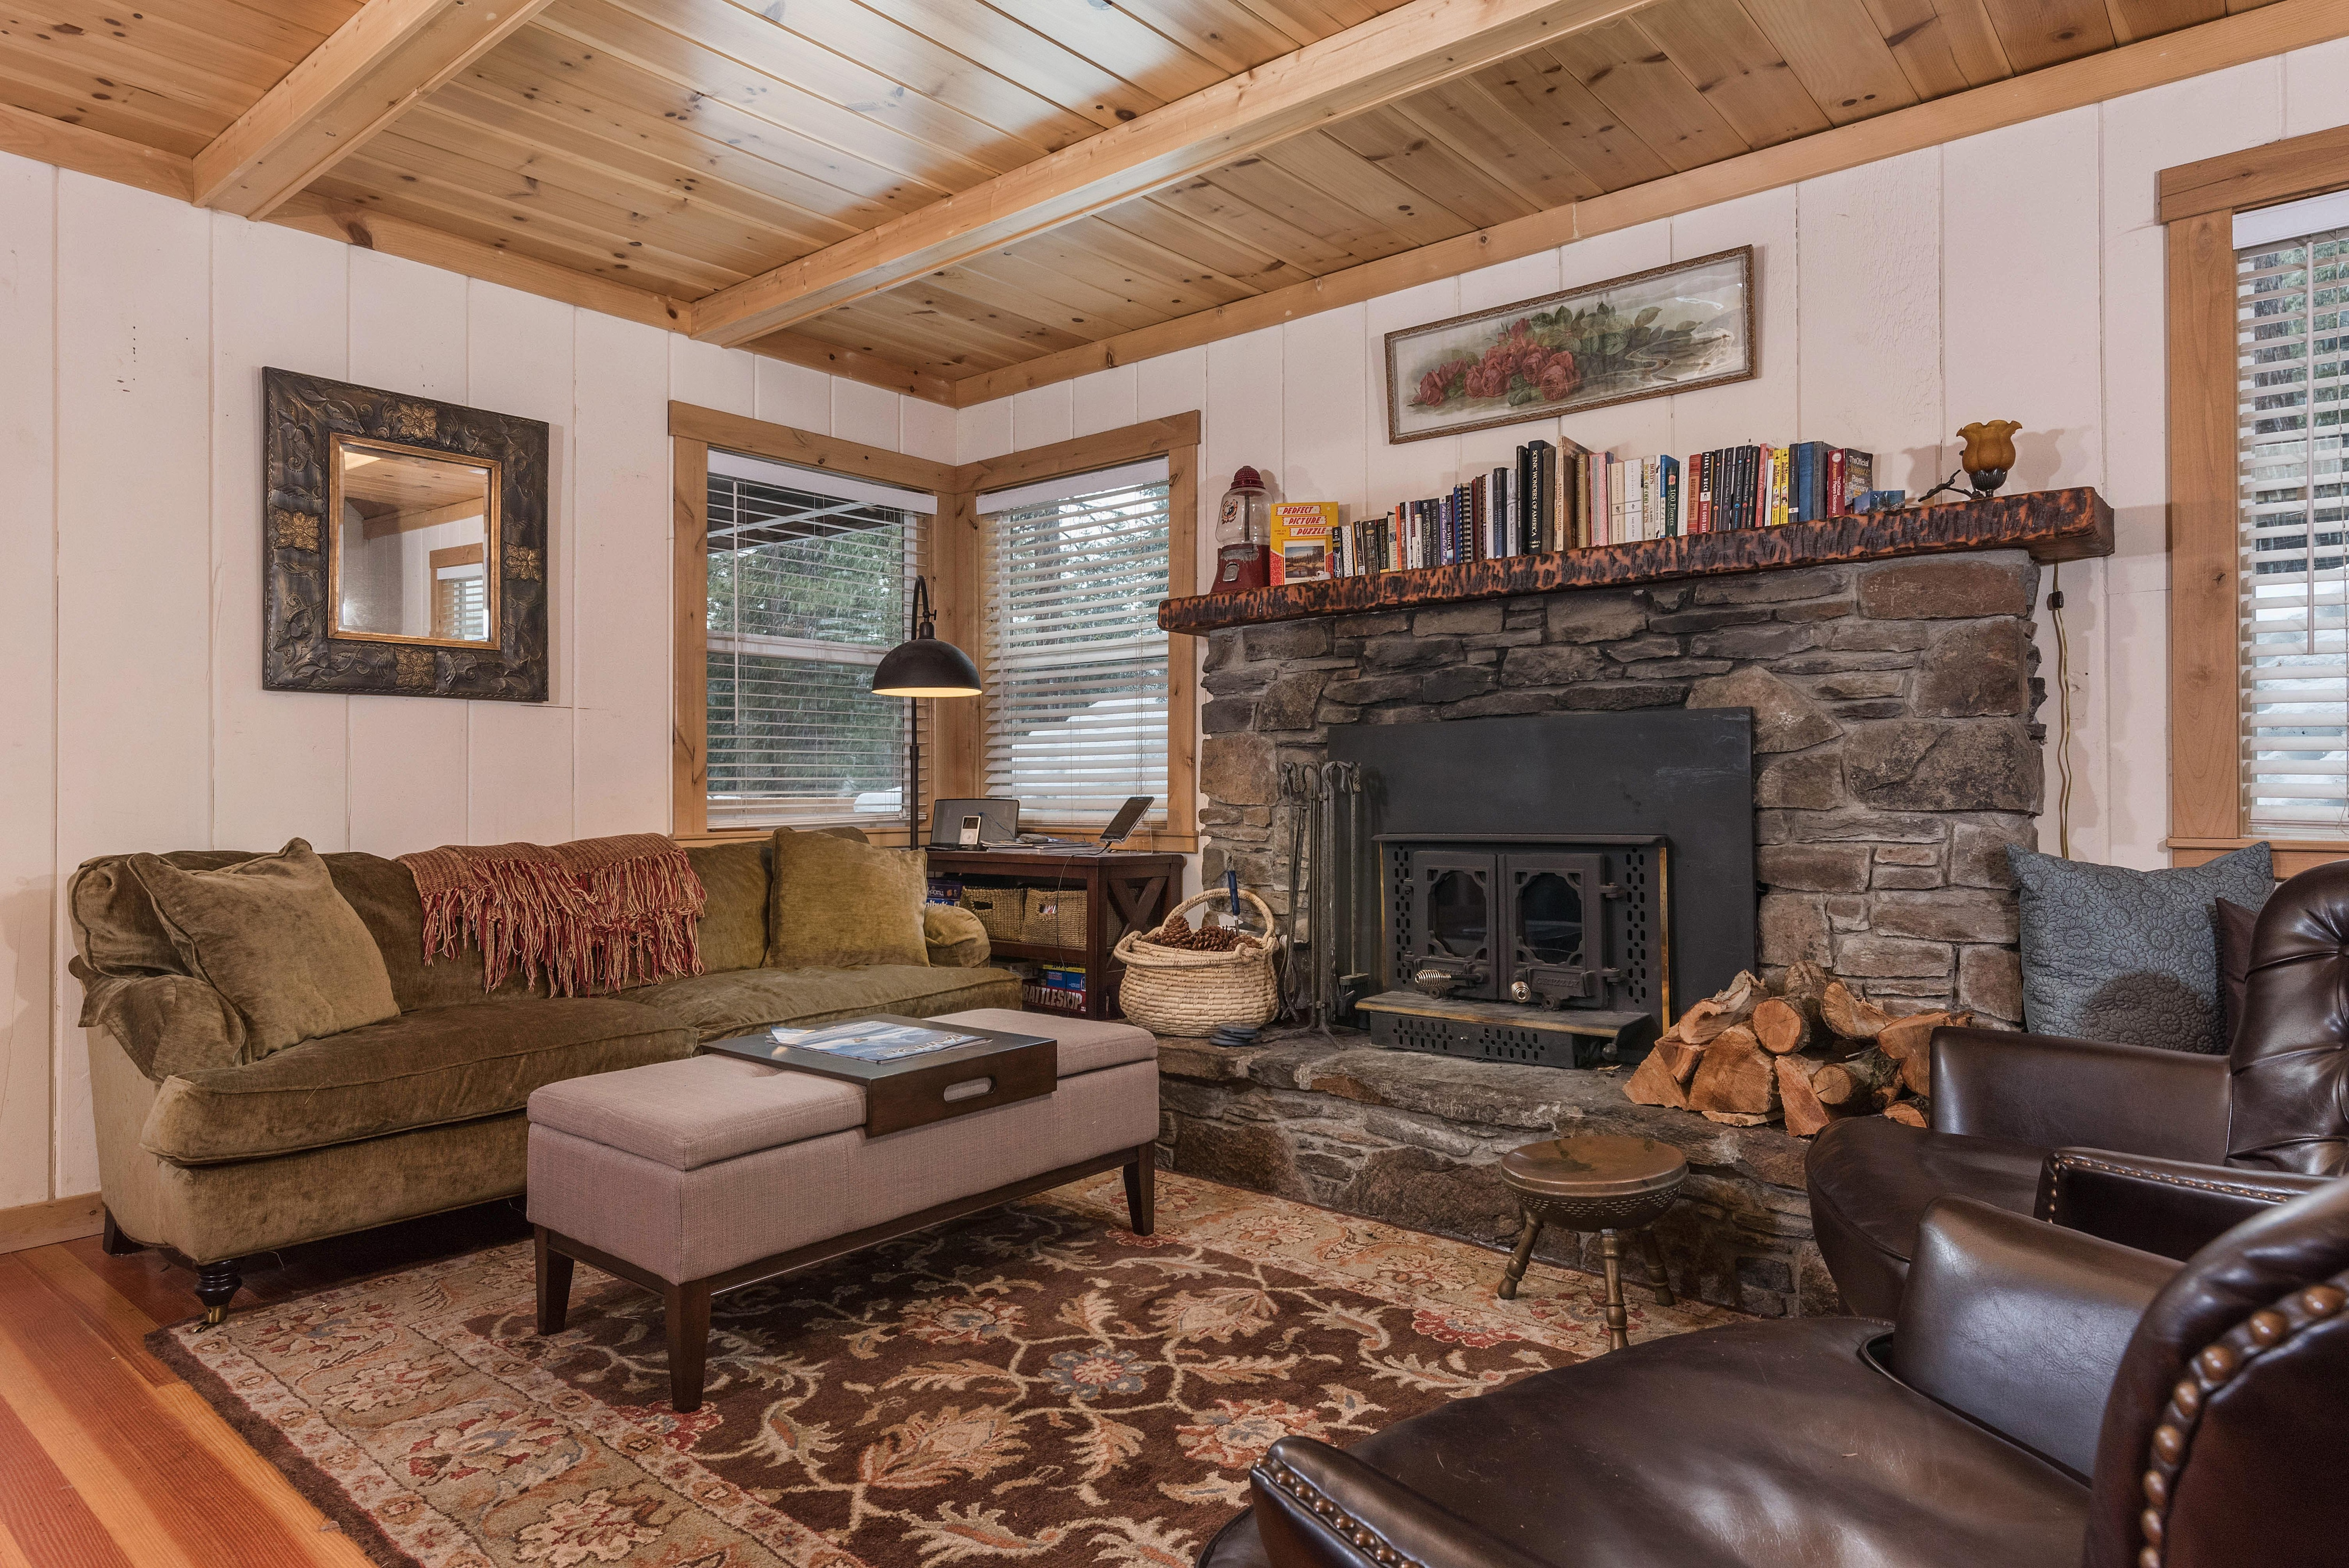 Welcome to Carnelian Bay! This cabin is professionally managed by TurnKey Vacation Rentals. (Please note the fireplace is not operational.)